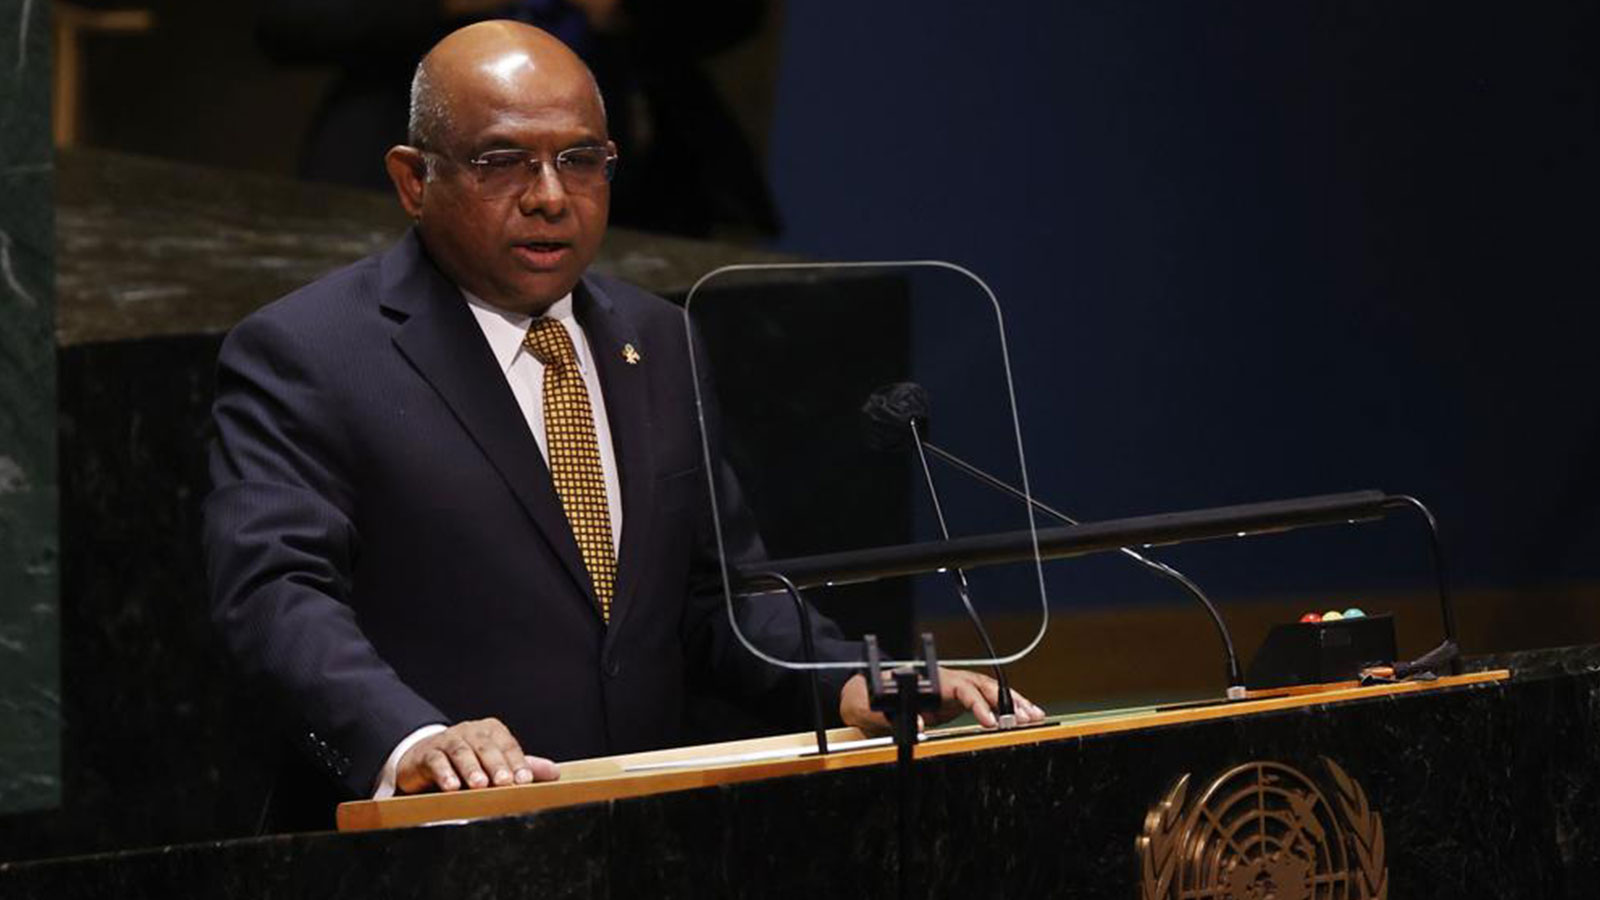 President of the General Assembly Abdulla Shahid speaks at a High-level meeting on the U.N. World Conference Against Racism during the 76th Session of the U.N. General Assembly at United Nations headquarters in New York, on Wednesday, Sept. 22, 2021